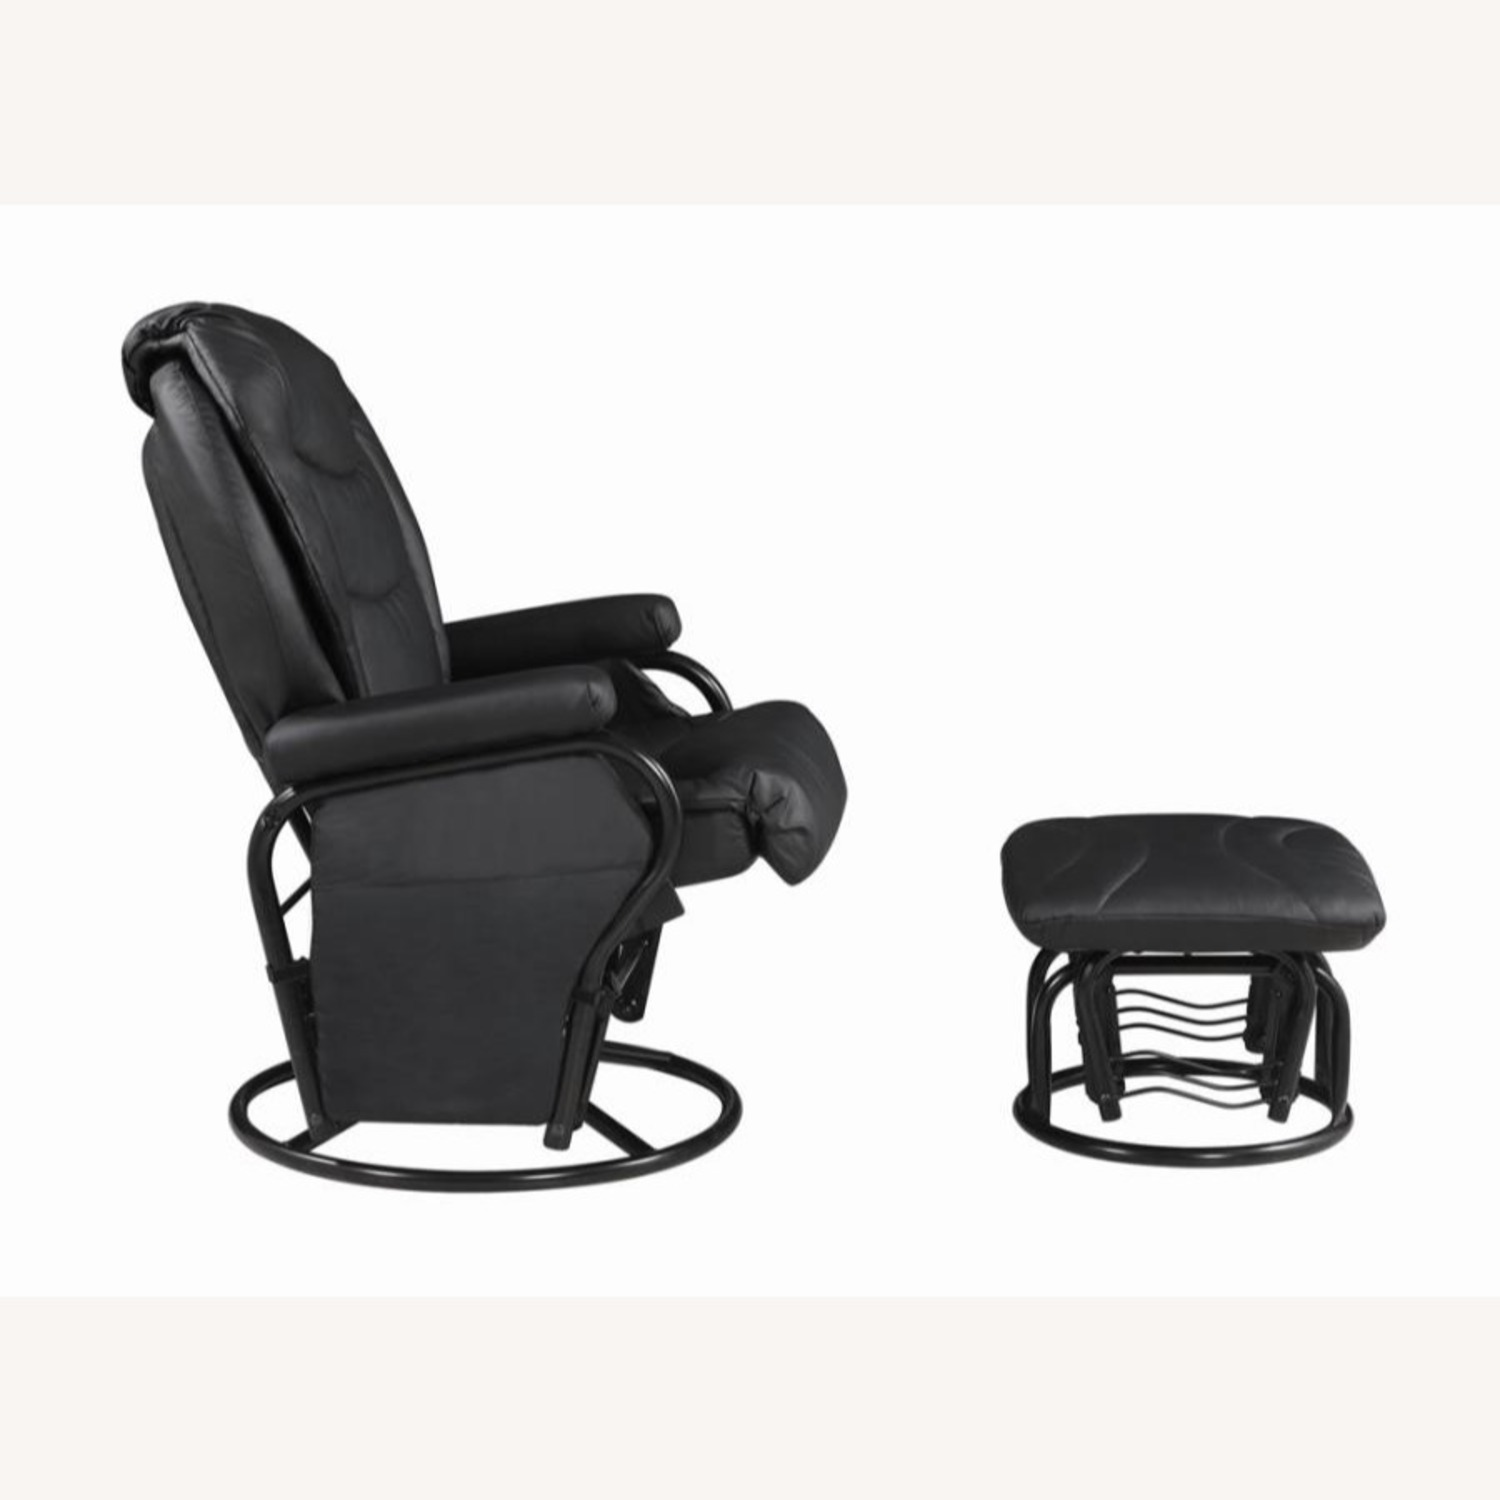 Glider W/ Ottoman In Black Leatherette Upholstery - image-3